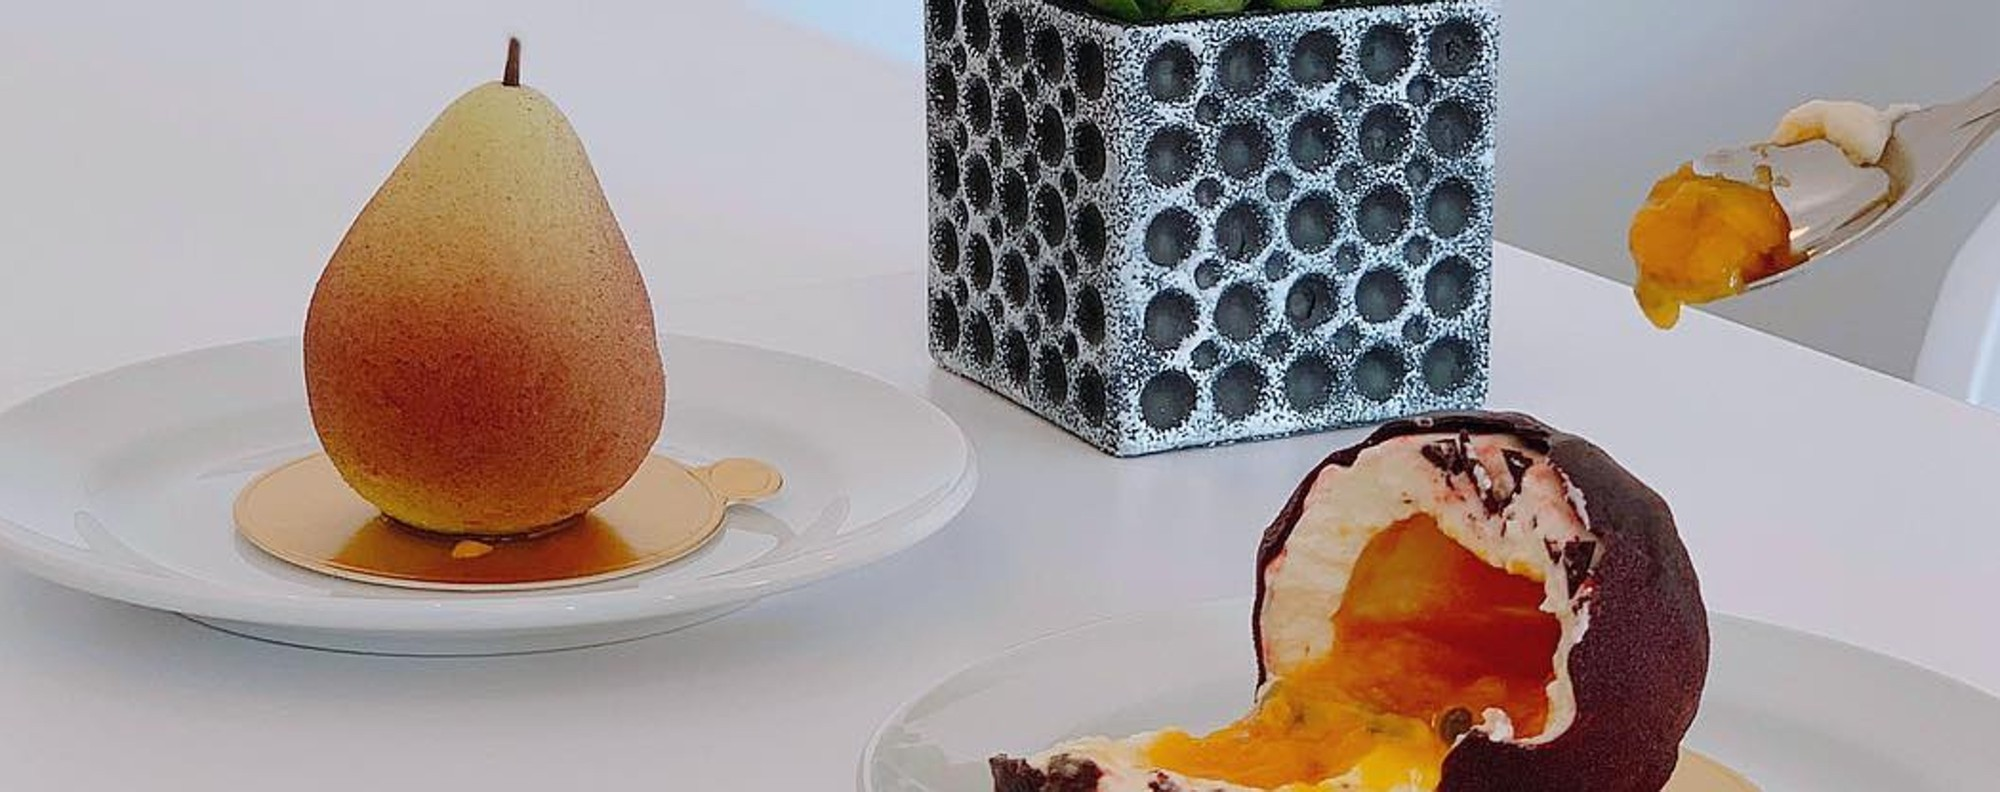 Passion Fruit & Pear from fruit series desserts at Namelaka Patisserie. Photo: Instagram @chowsc86